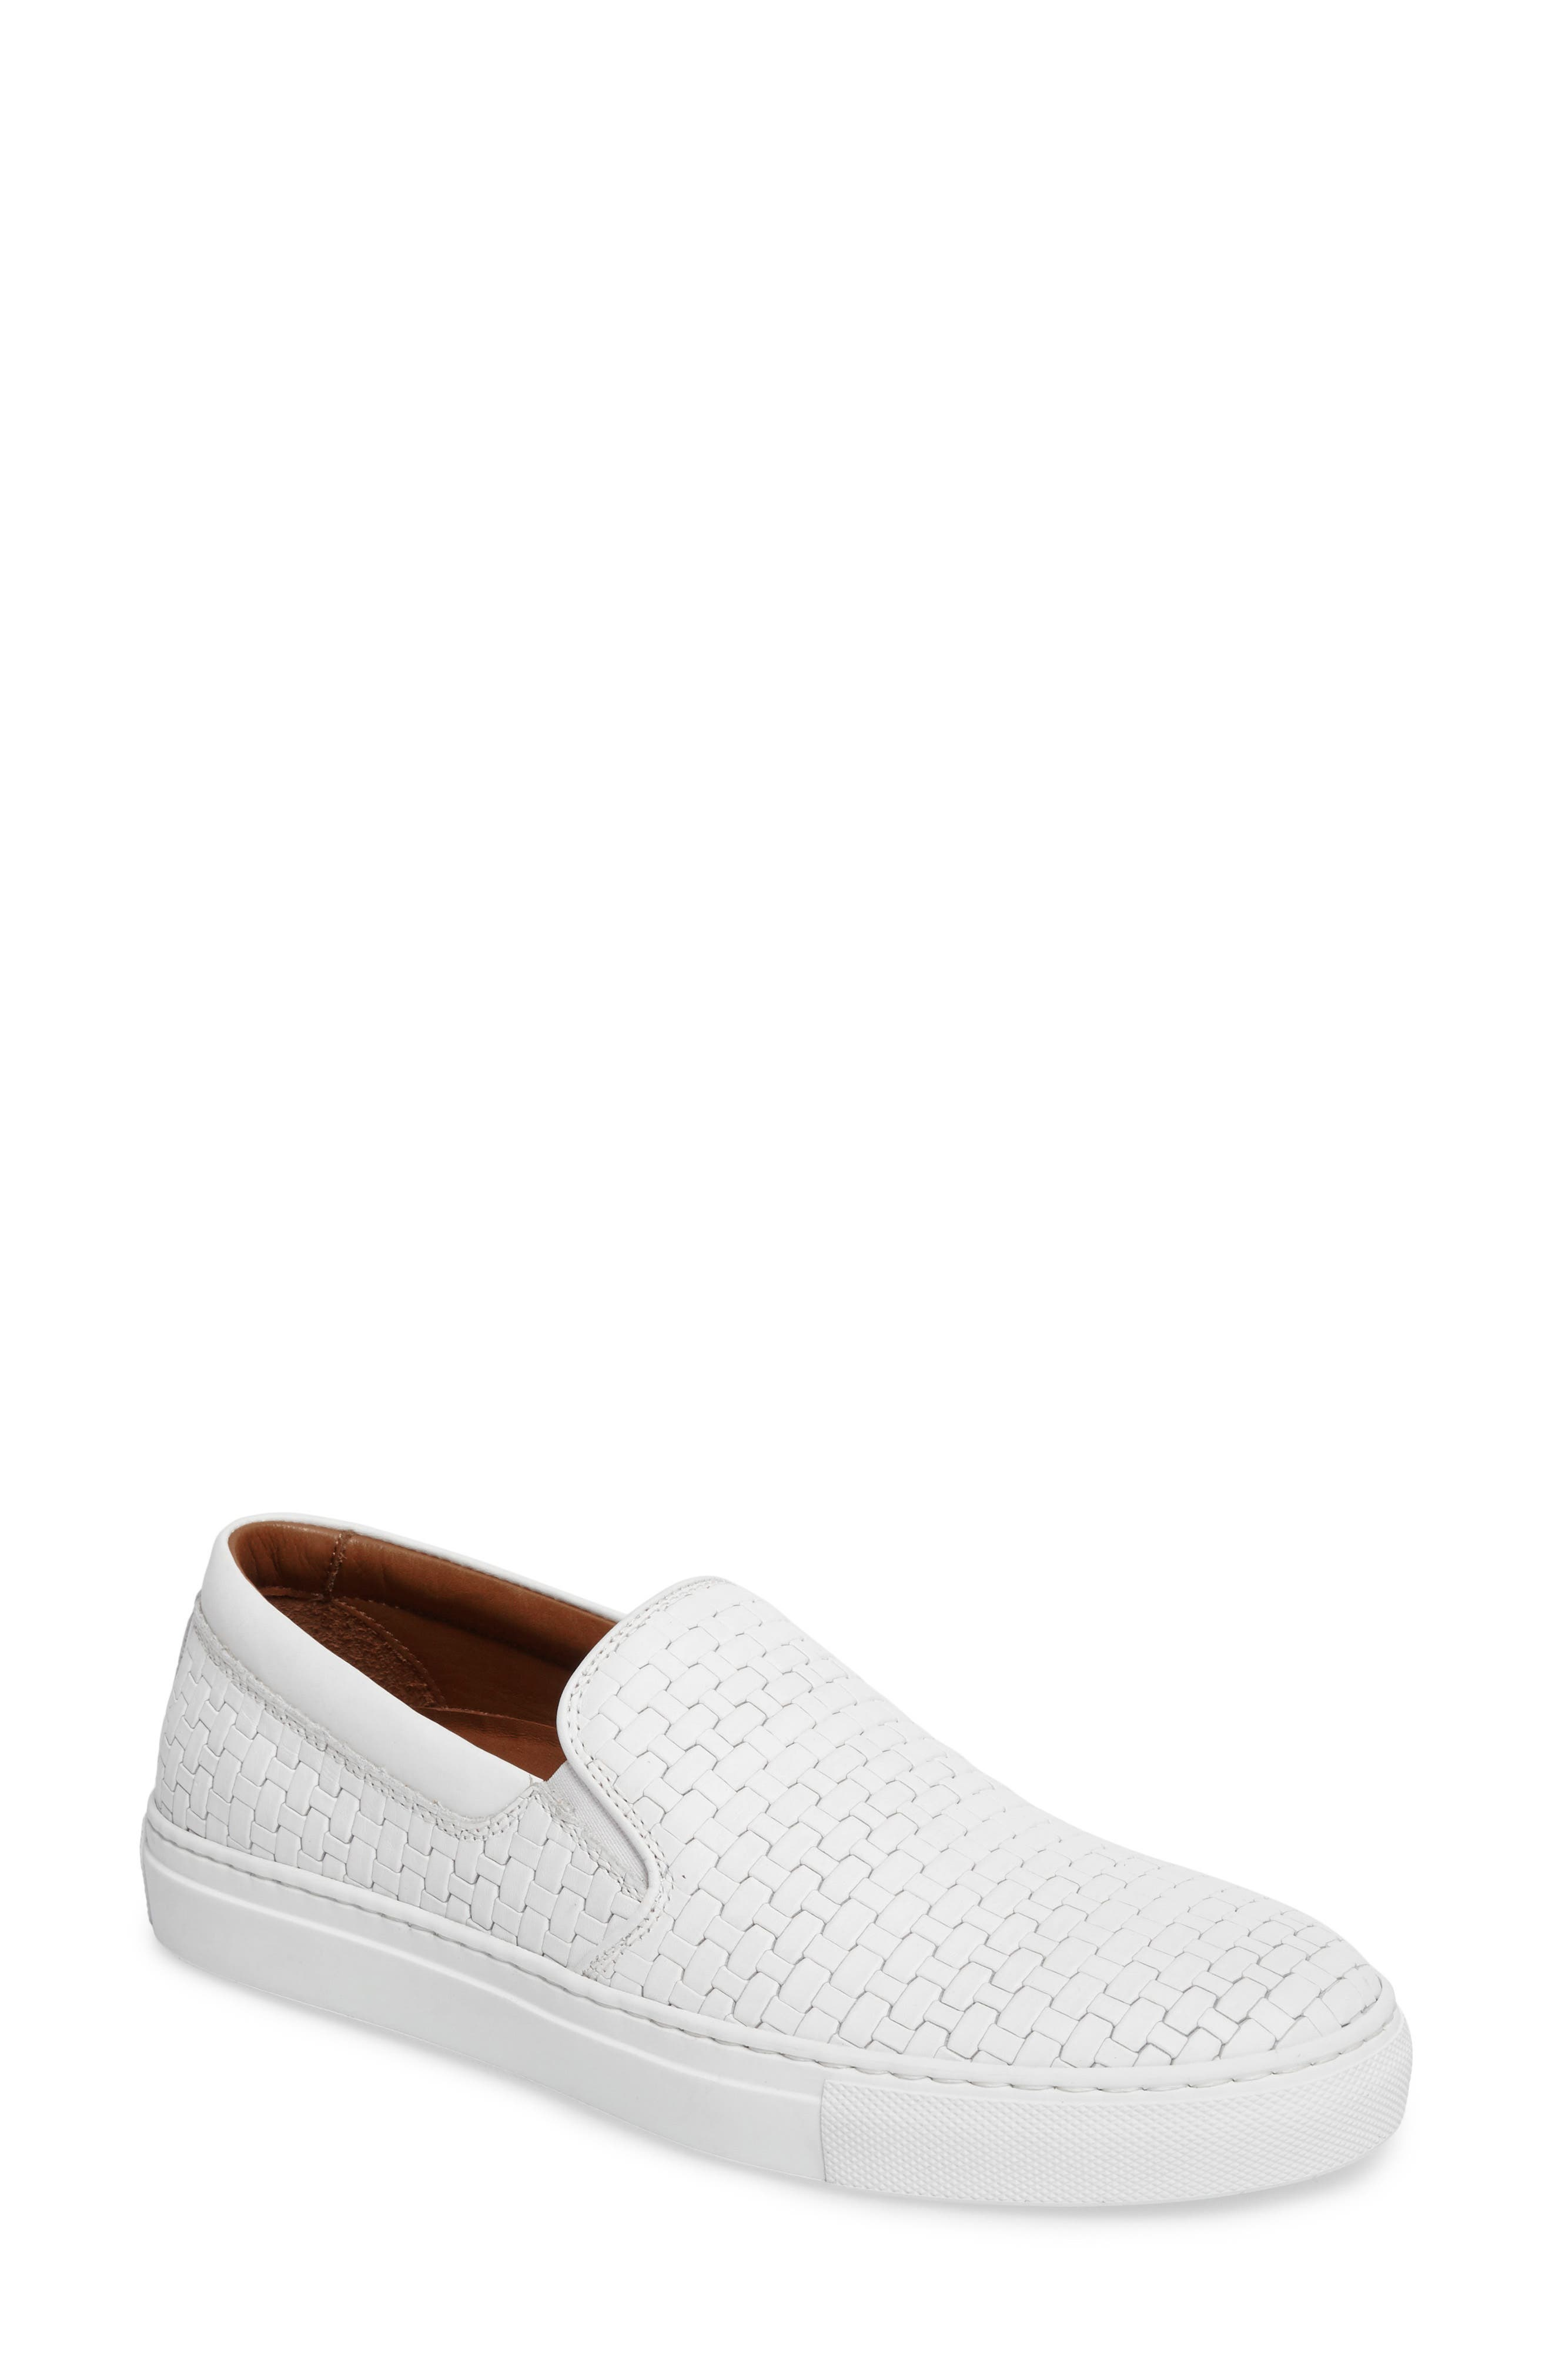 Aquatalia Women's Ashlynn Embossed Slip-On Sneaker HH3S0kKLY